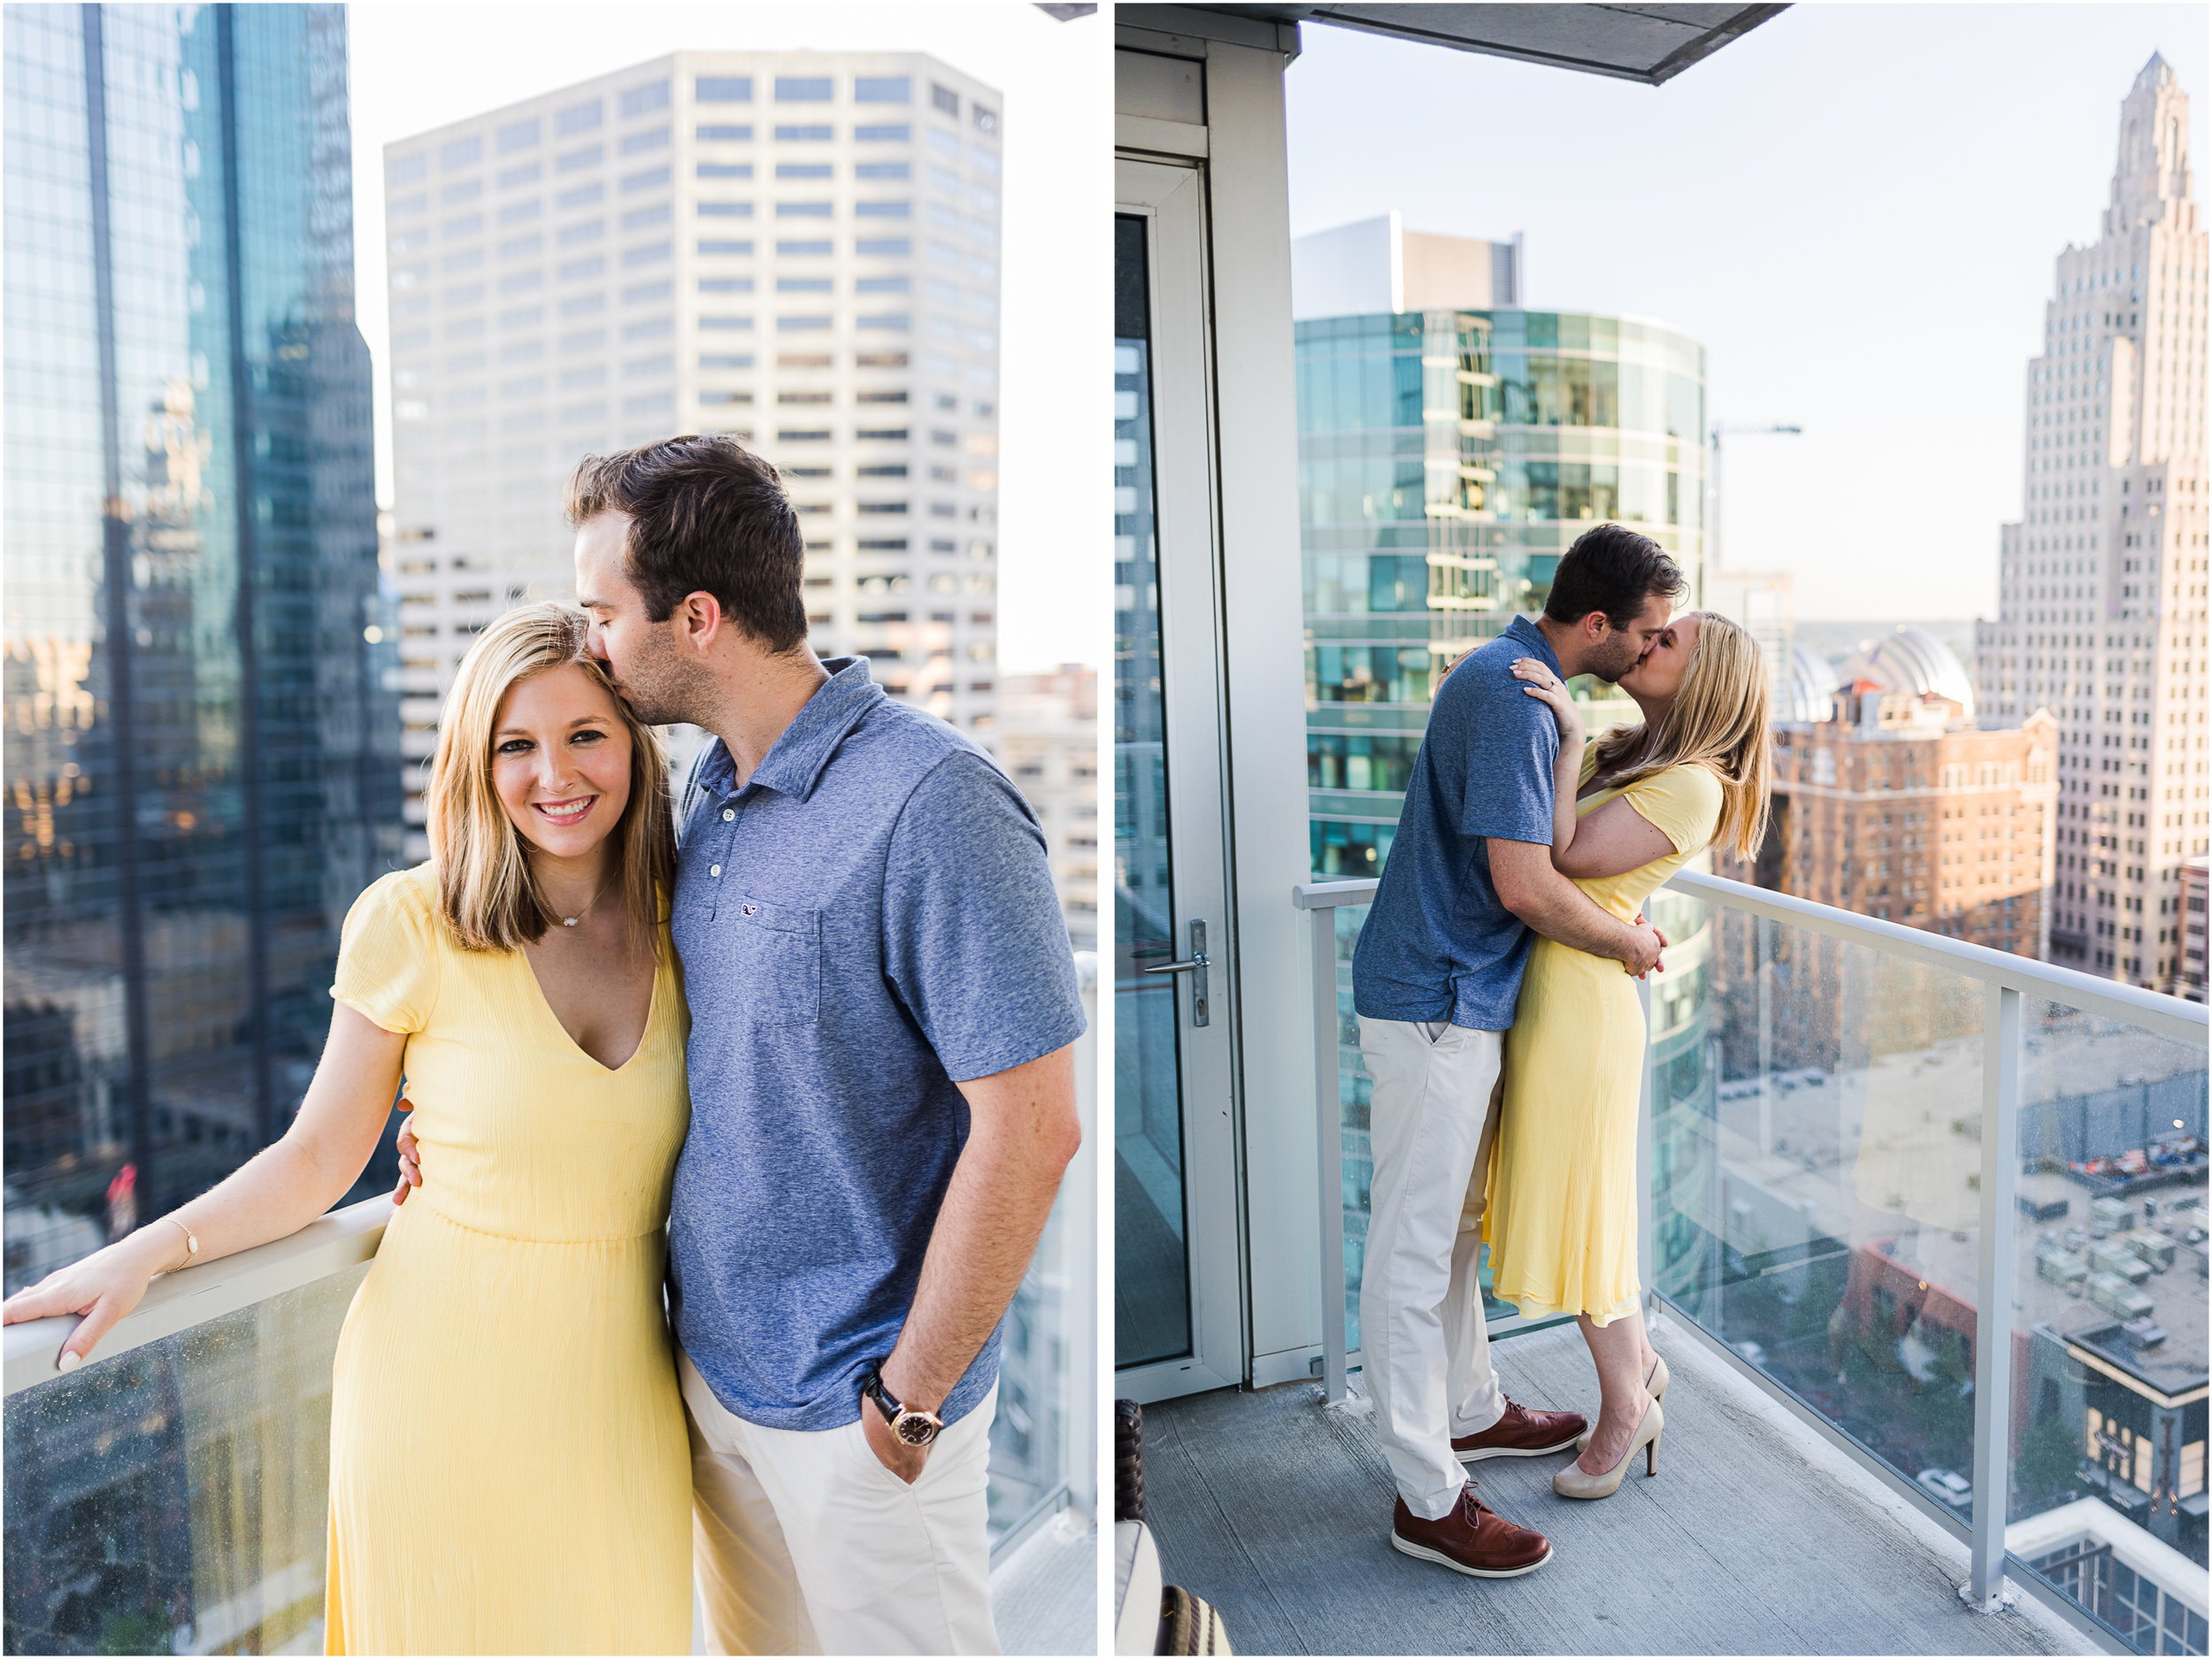 Downtown kansas city engagement photo .jpg